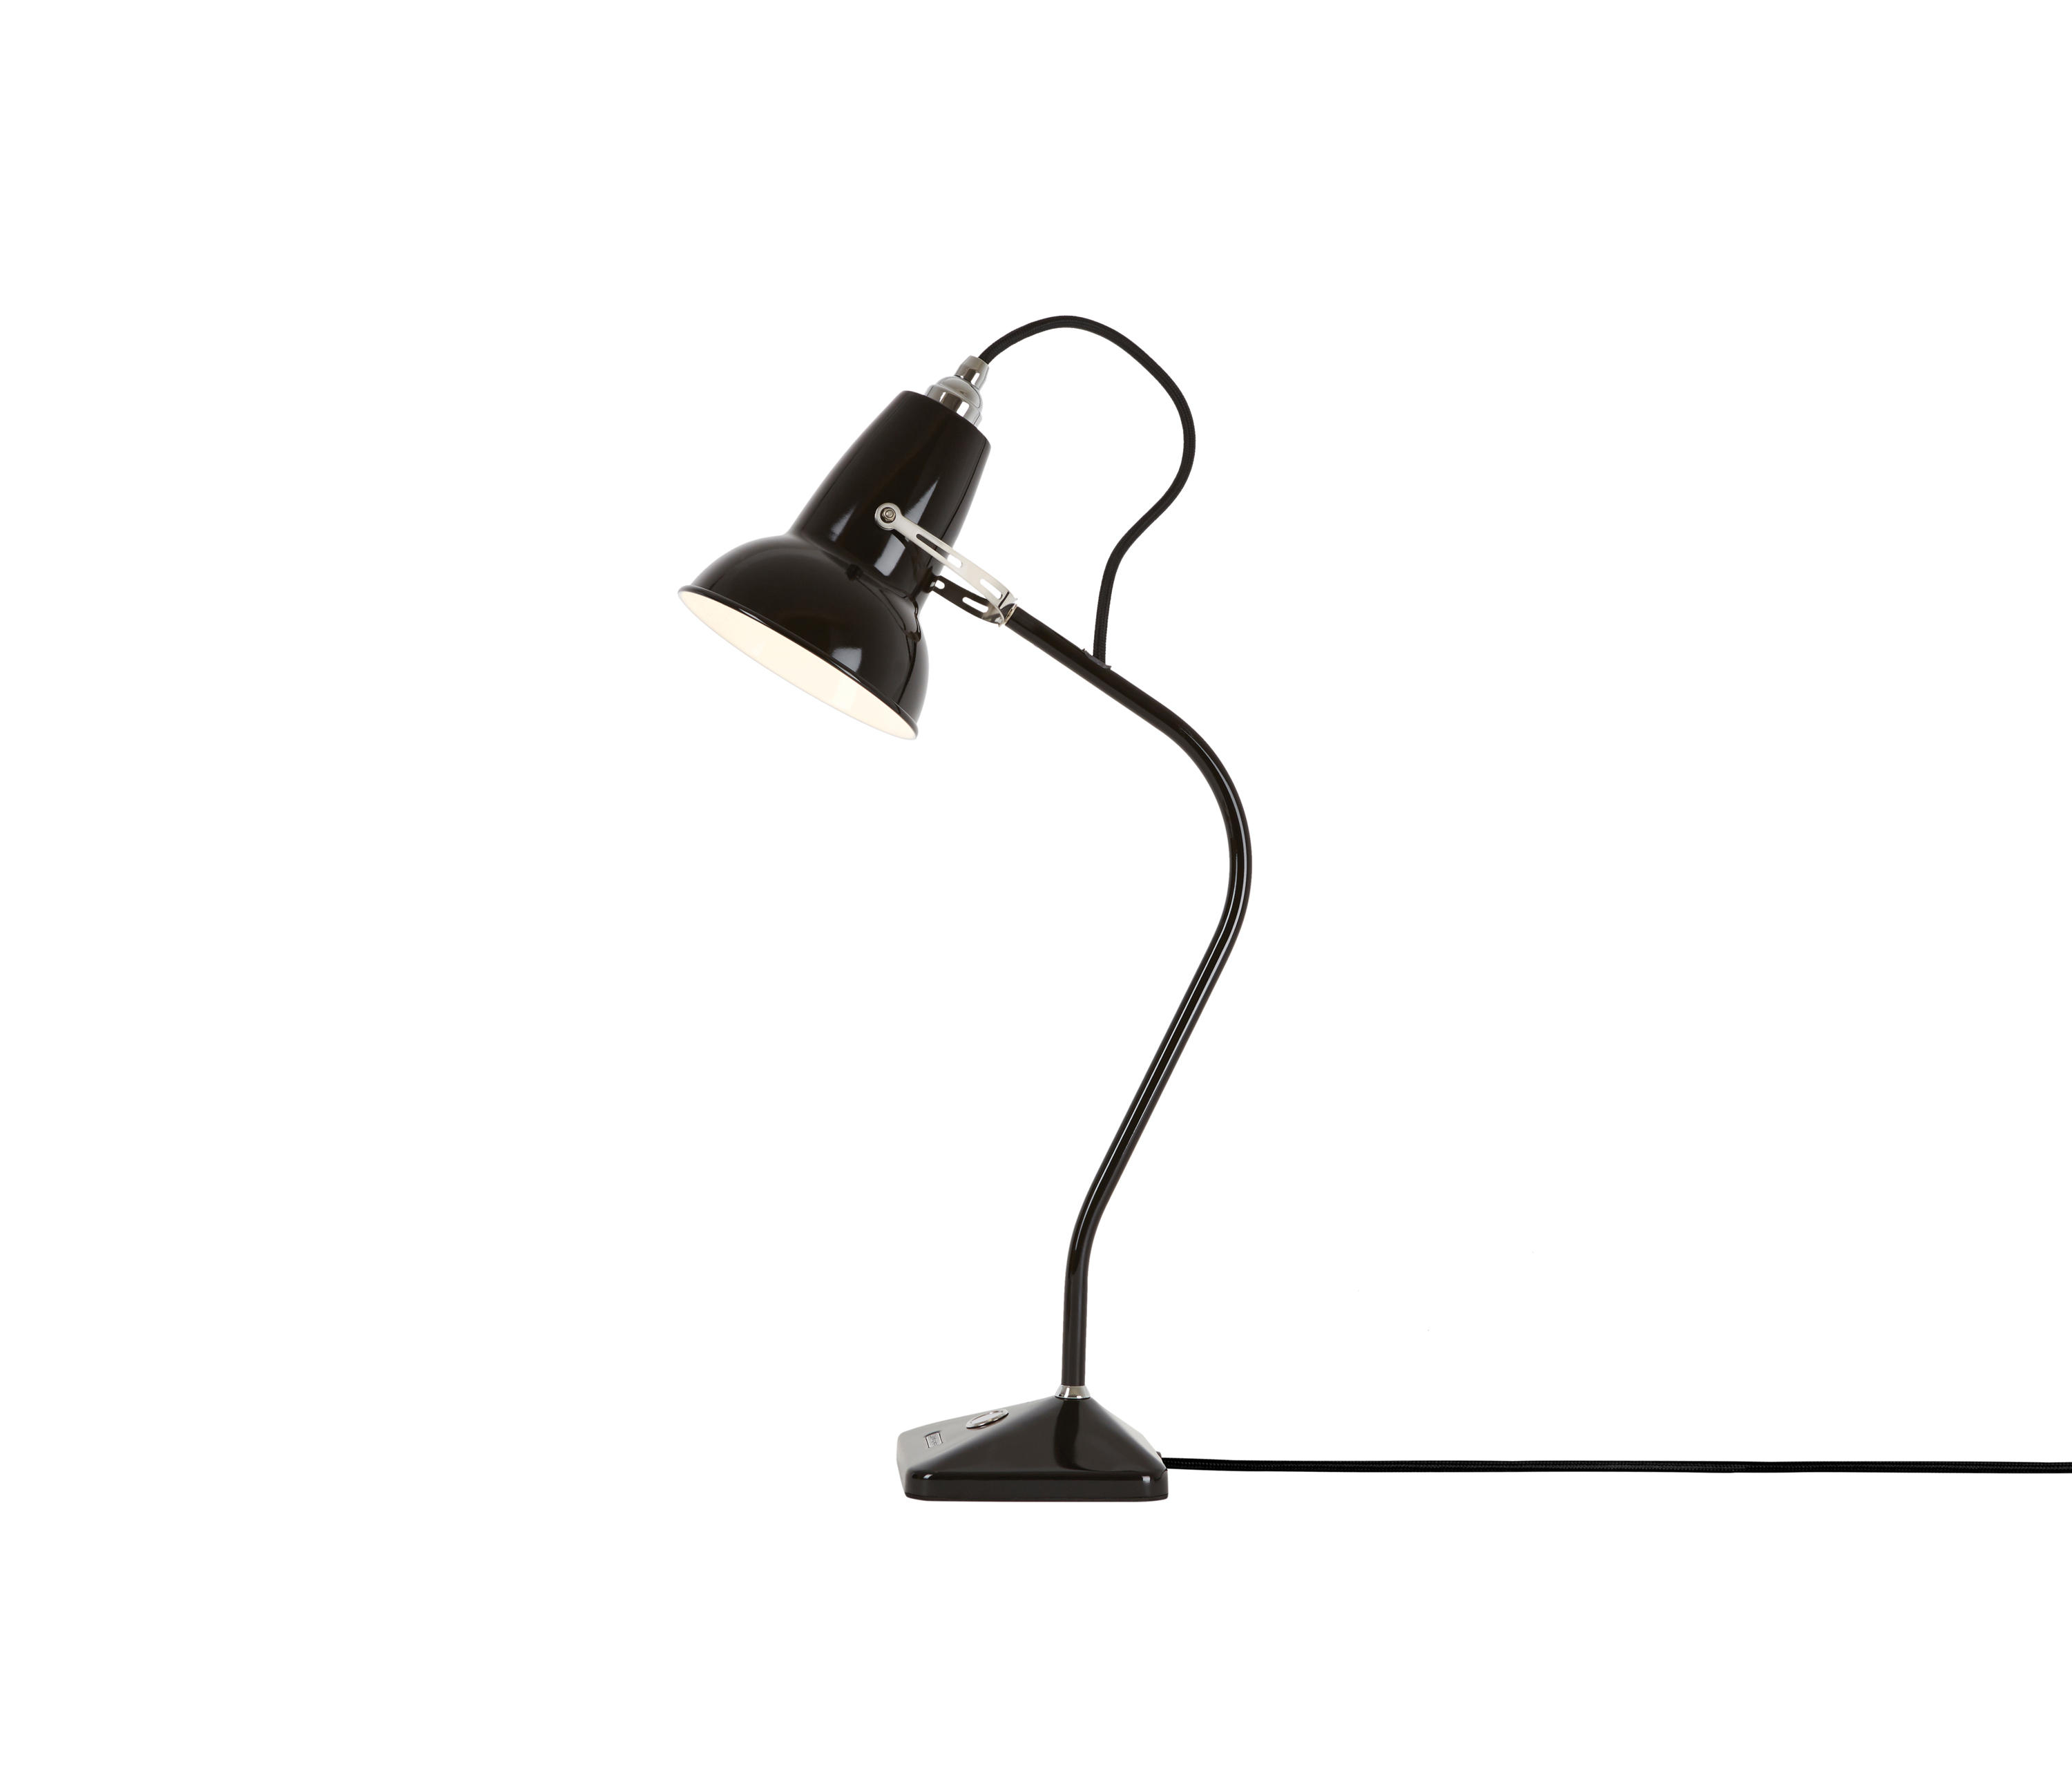 iconic lighting. simple lighting original 1227 mini table lamp by anglepoise  general lighting  in iconic lighting o